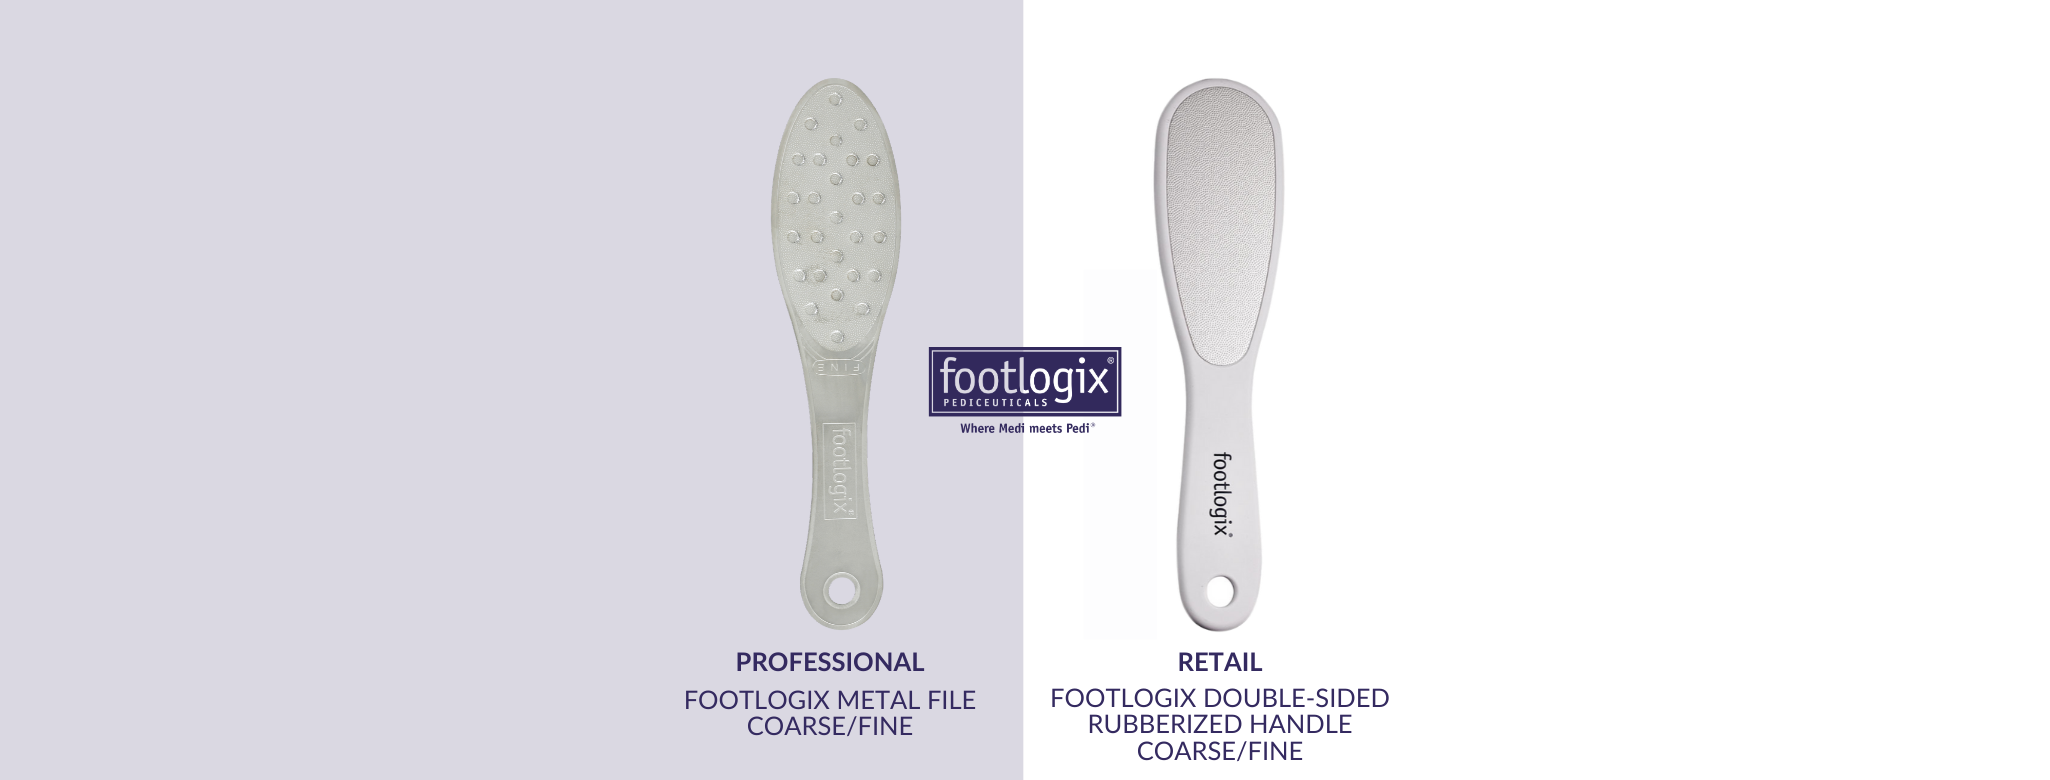 Footlogix Metal File: Grit Information